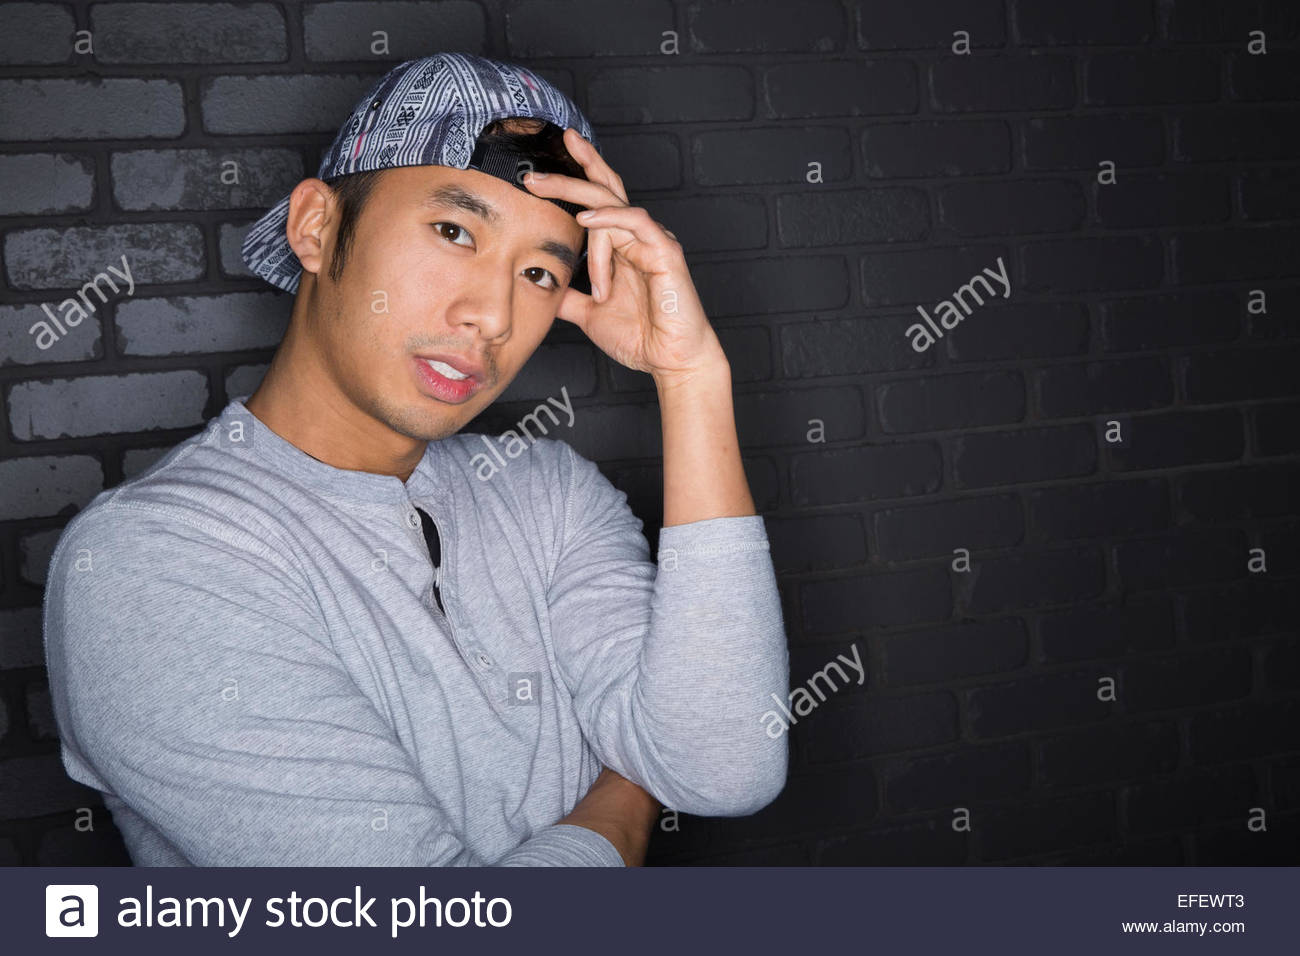 Portrait of serious man with backward baseball cap - Stock Image